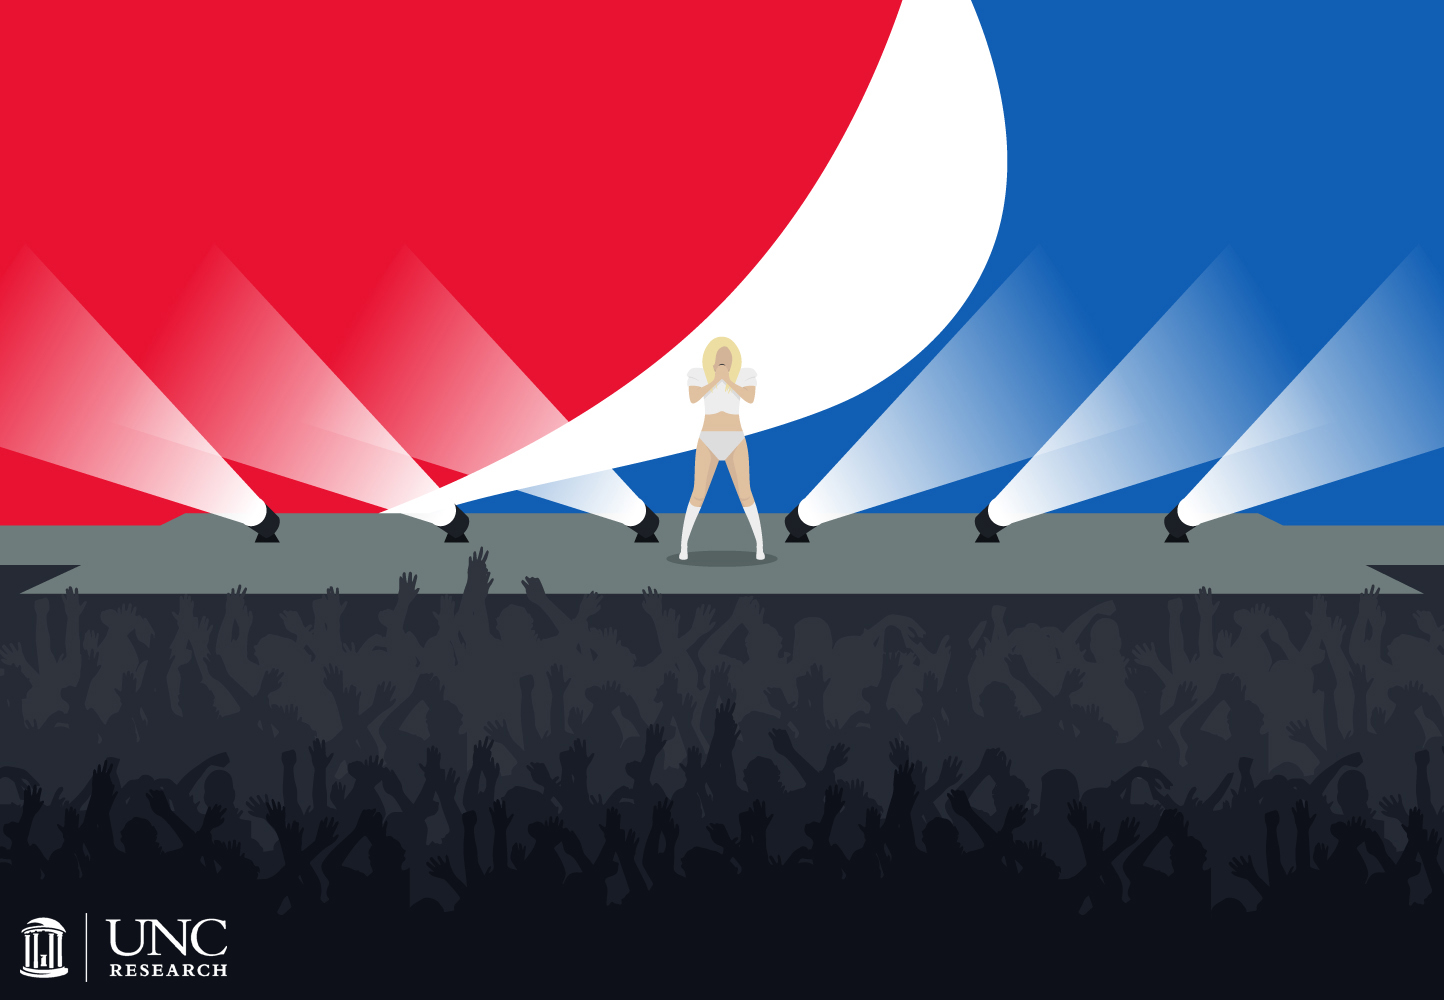 Illustration of Lady Gaga on a stage with an audience and large pepsi logo behind her